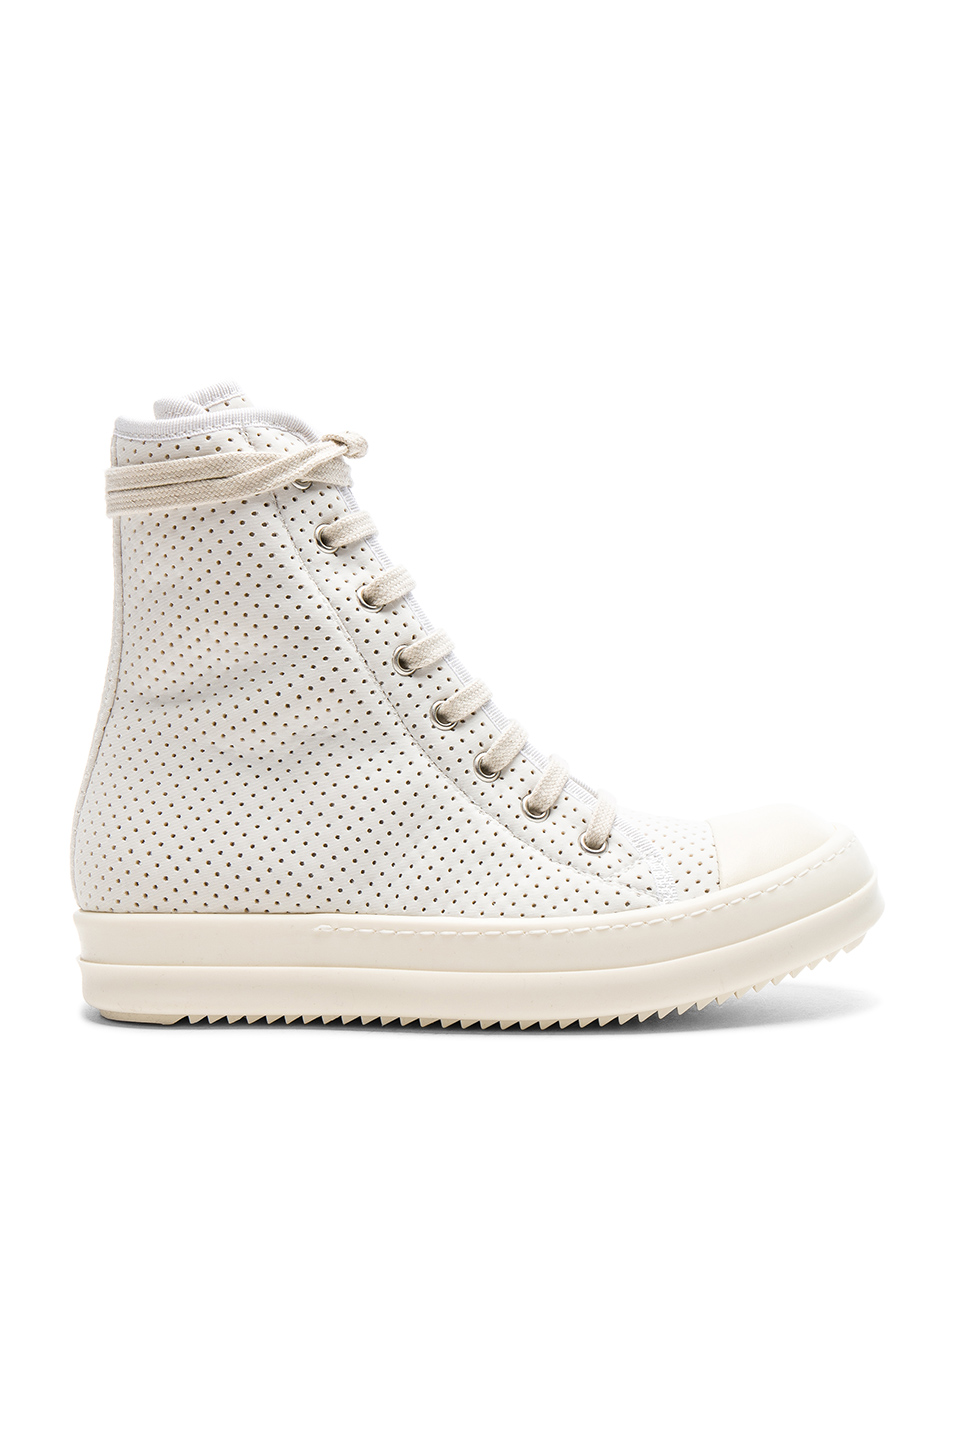 DRKSHDW by Rick Owens Scarpe Sneakers in White